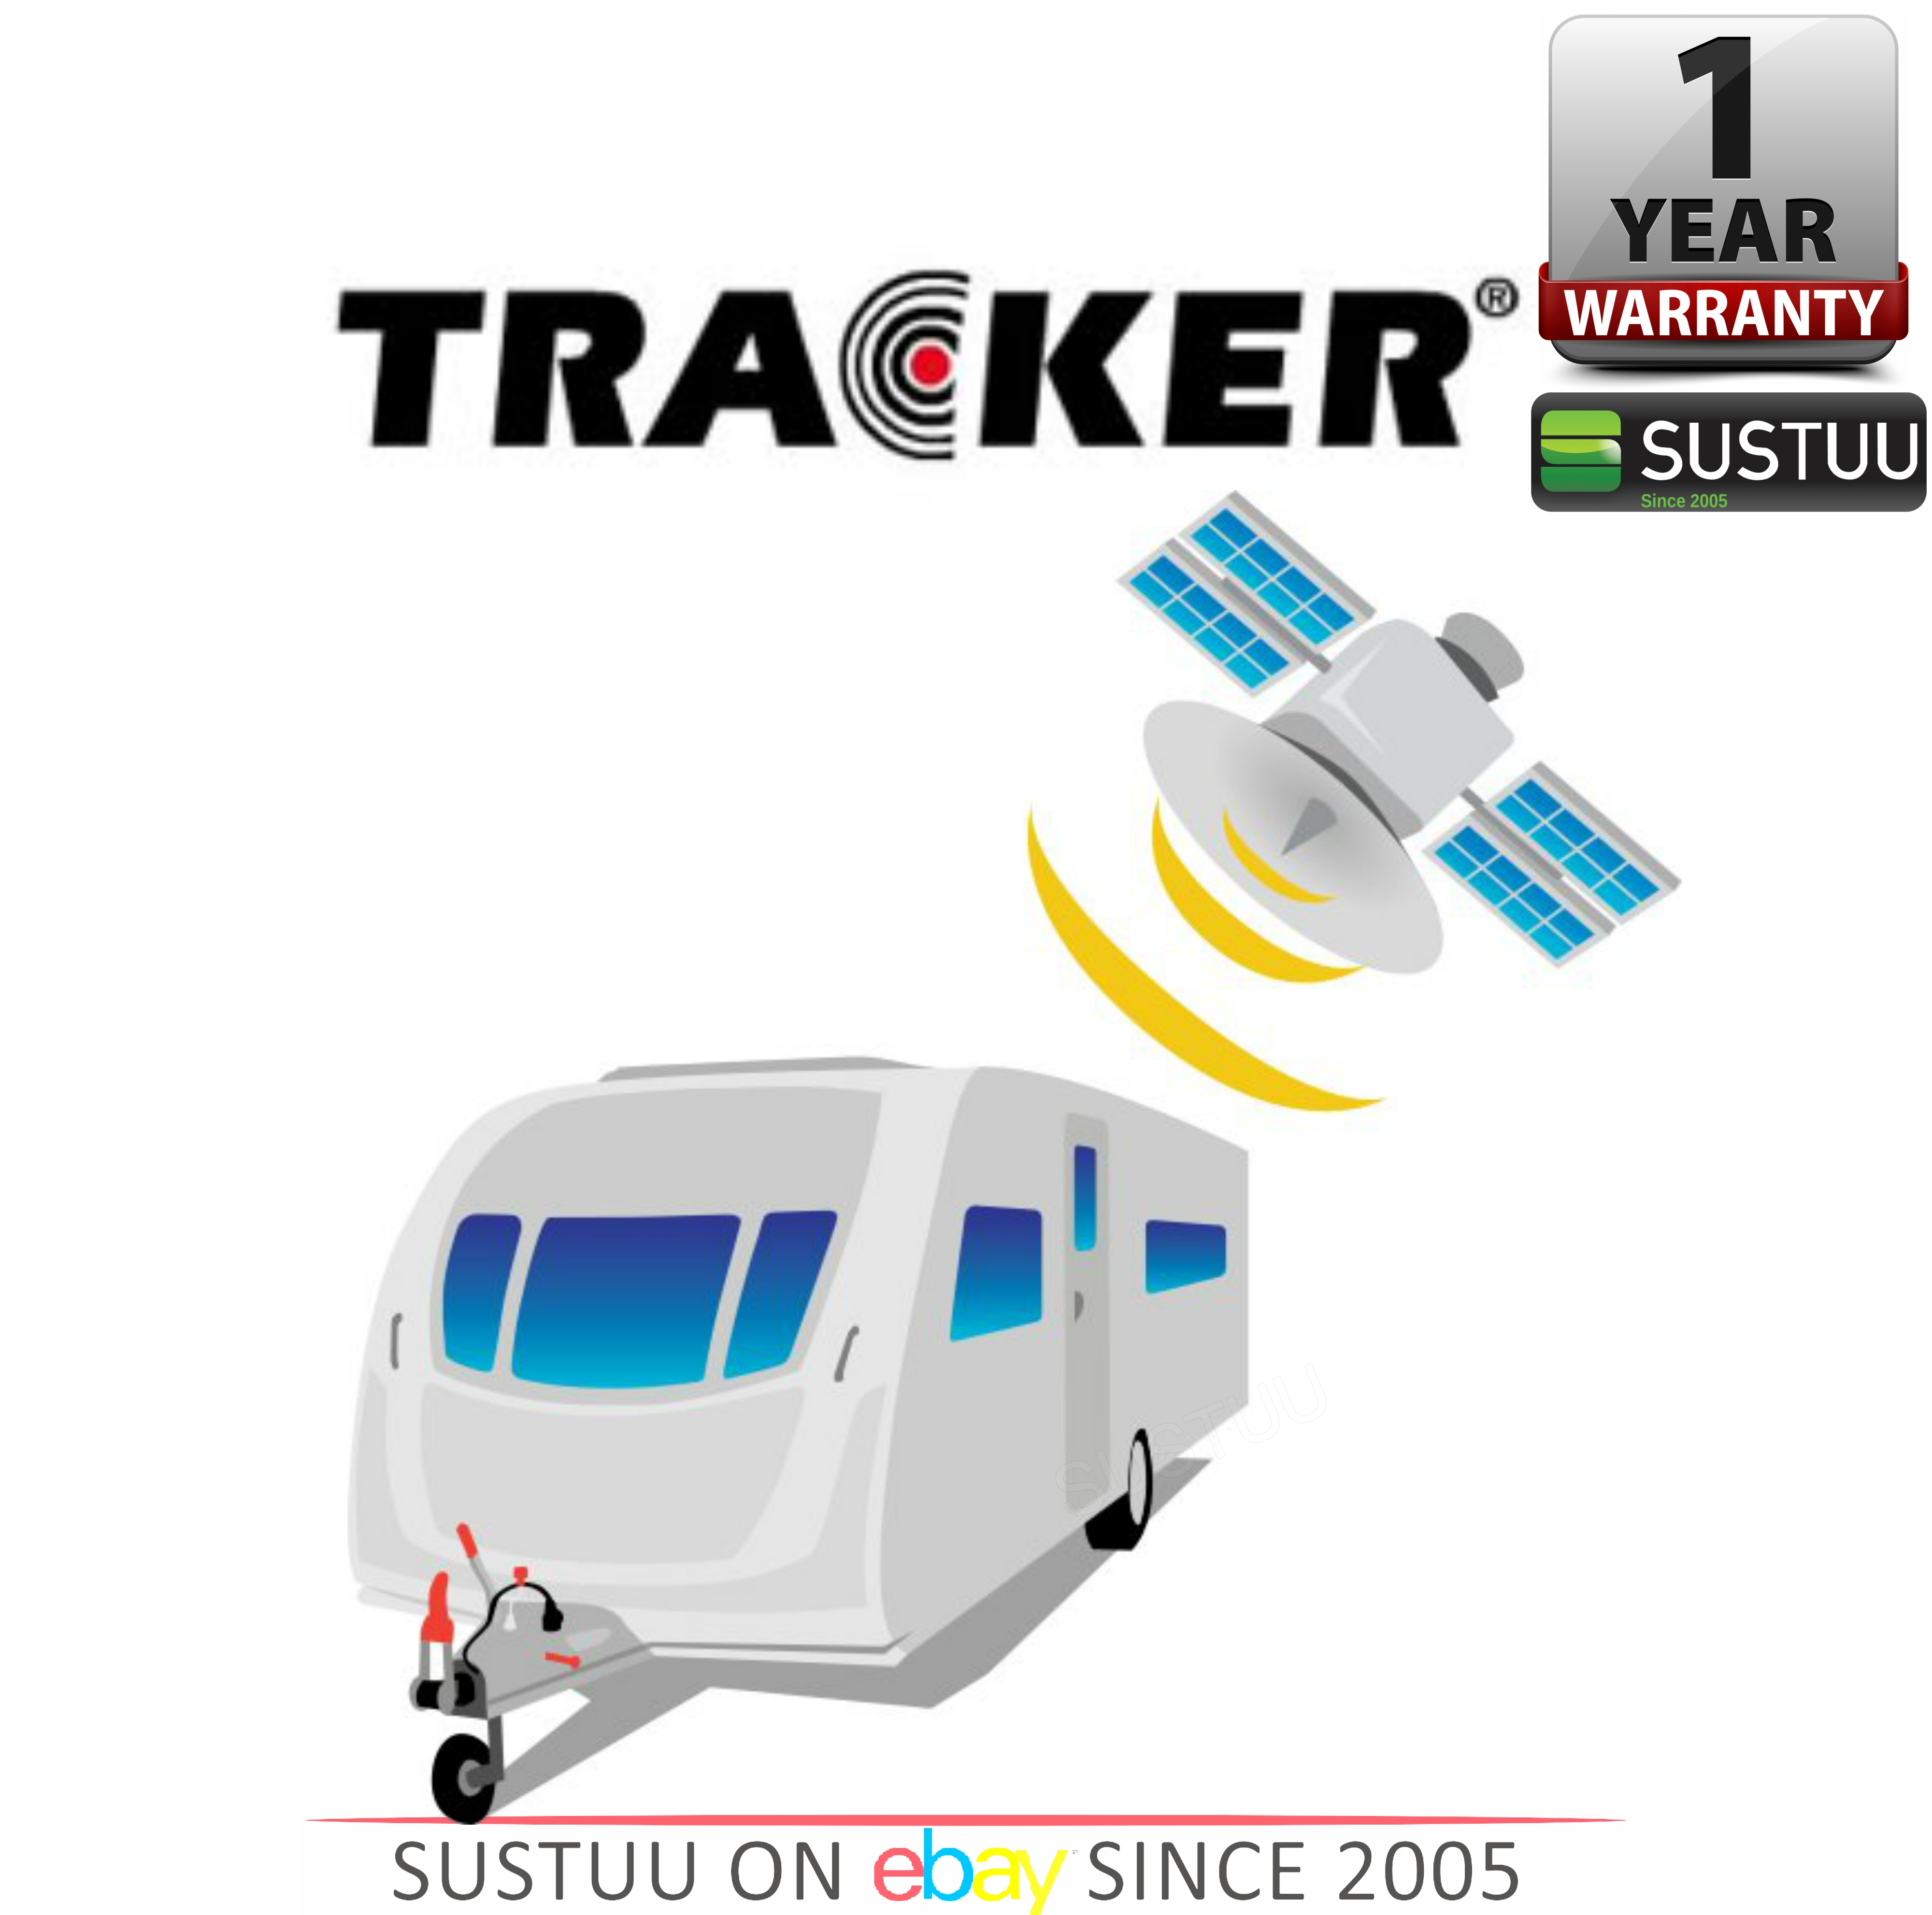 New Caravan Tracker/ Monitor With Remote Control up to 5 years battery life